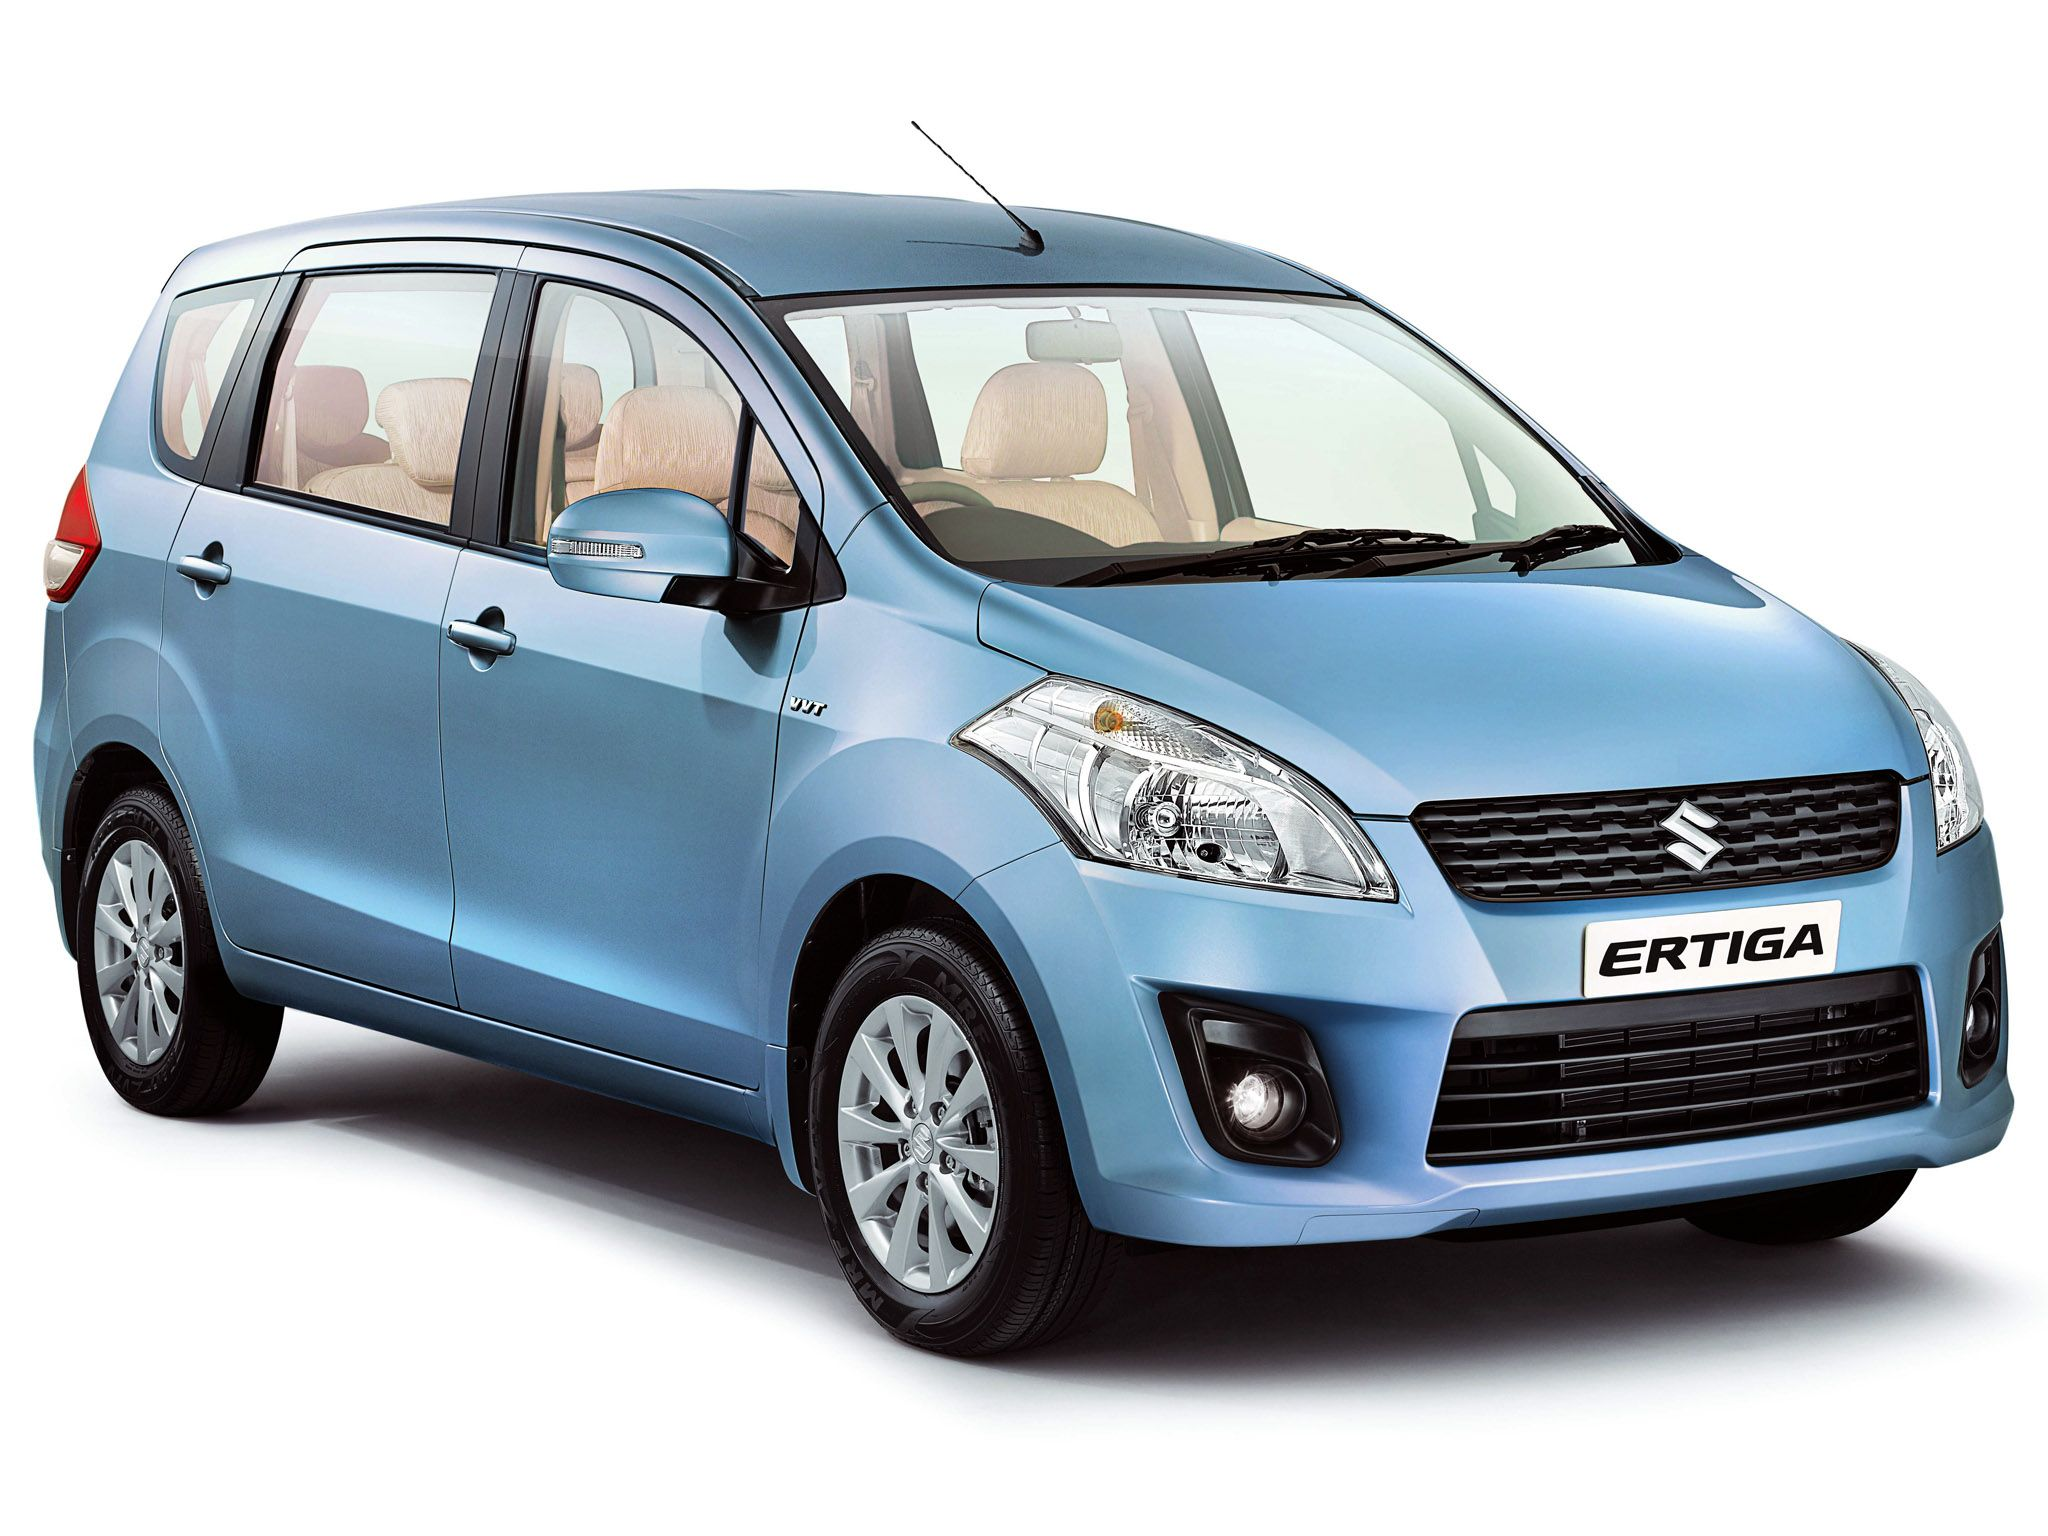 new car release in indiaThis article is excerpted from the blog New Car Release In this